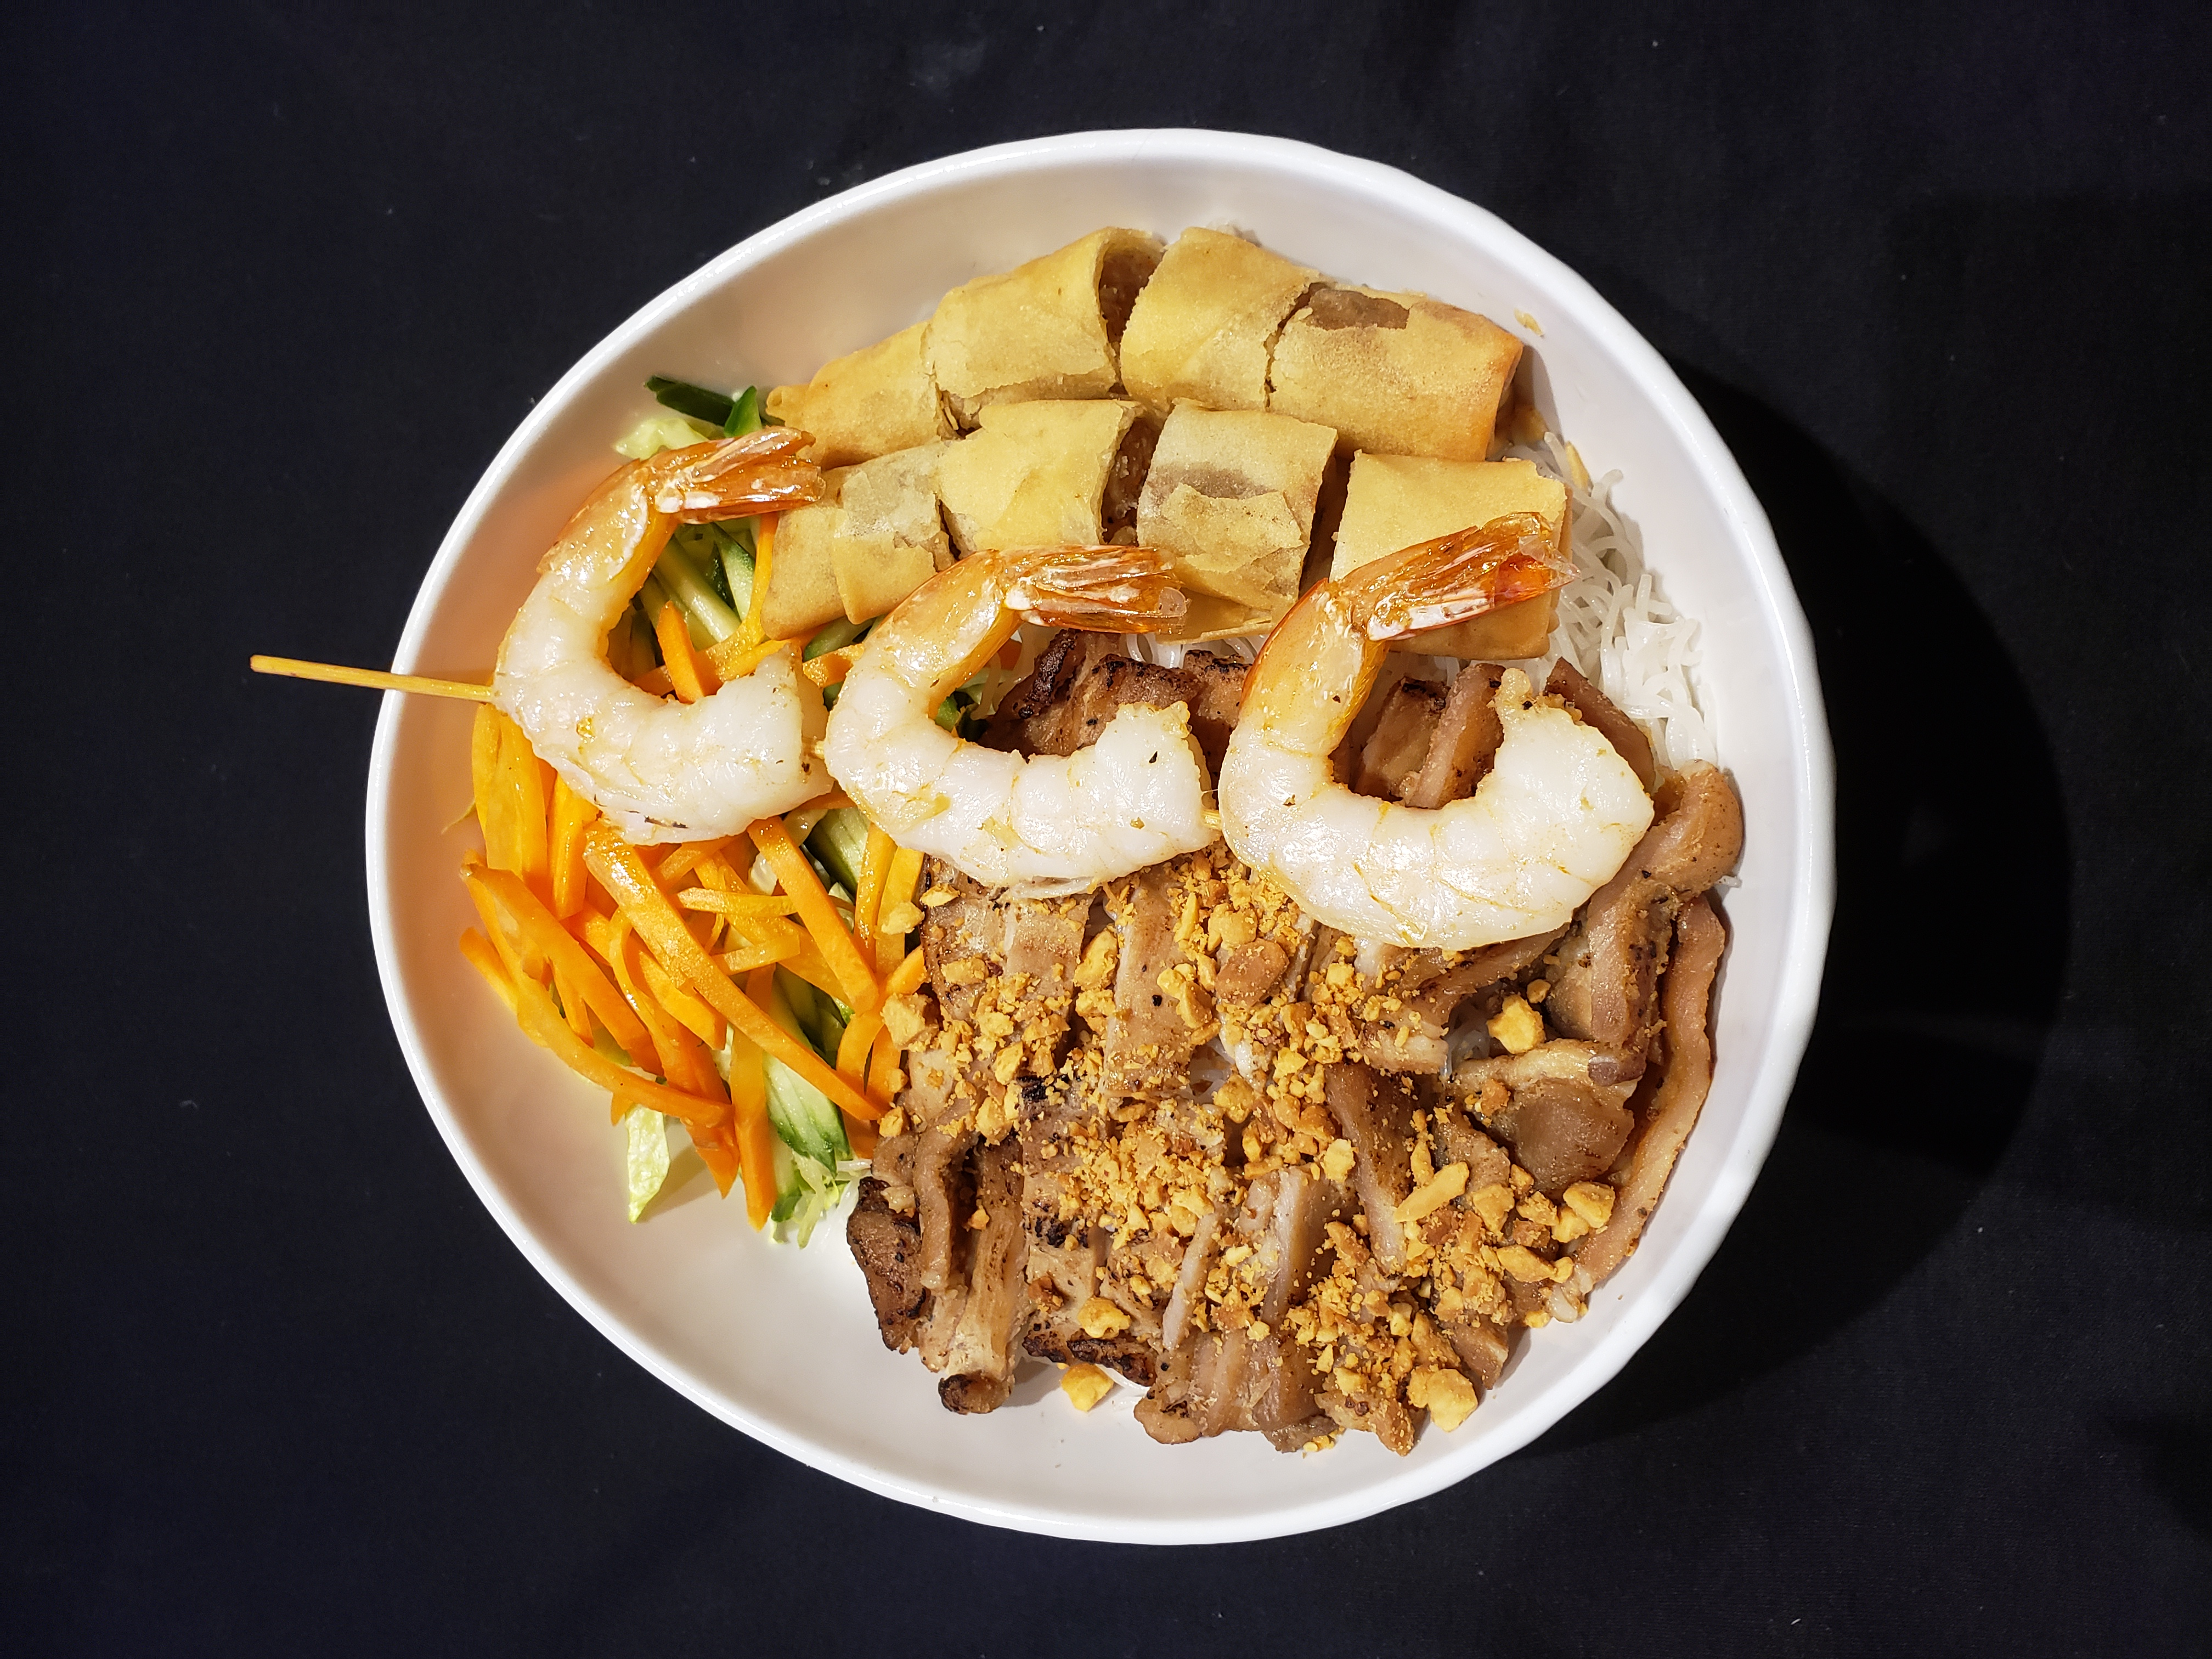 29. Vermicelli with Grilled Prawns, Charbroiled Pork & spring Rolls